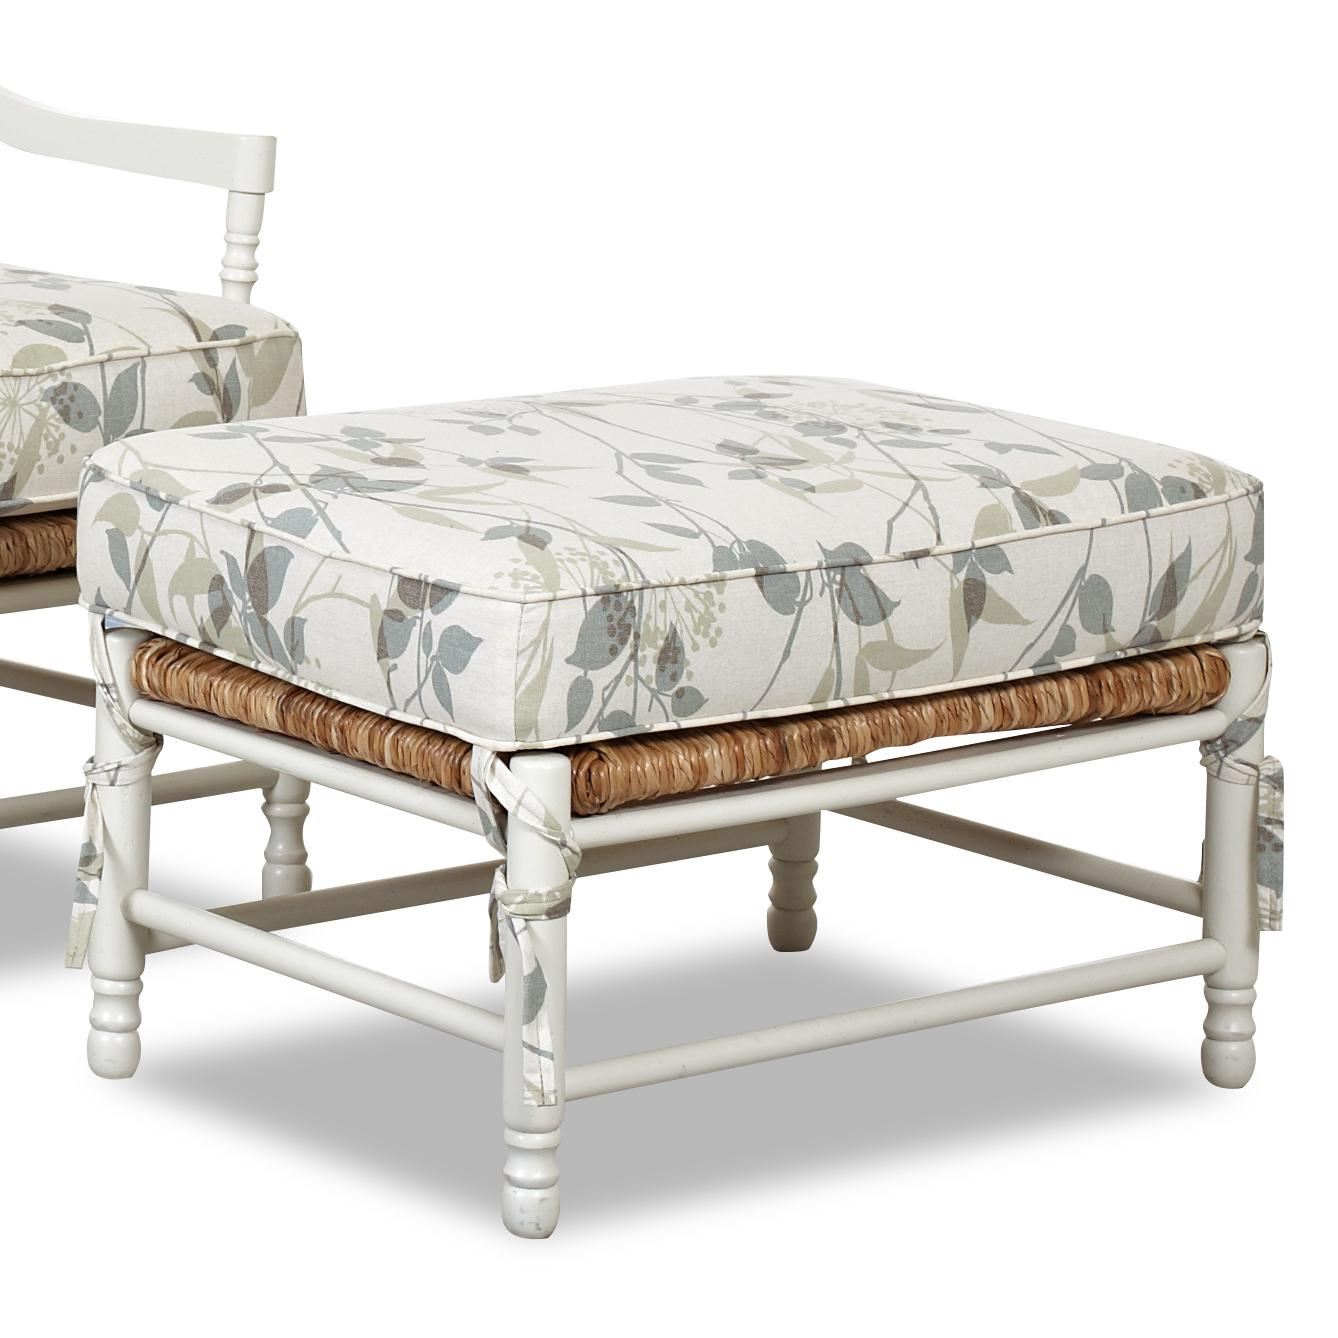 Klaussner Chairs and Accents Verano Ottoman - Item Number: K300 OTTO